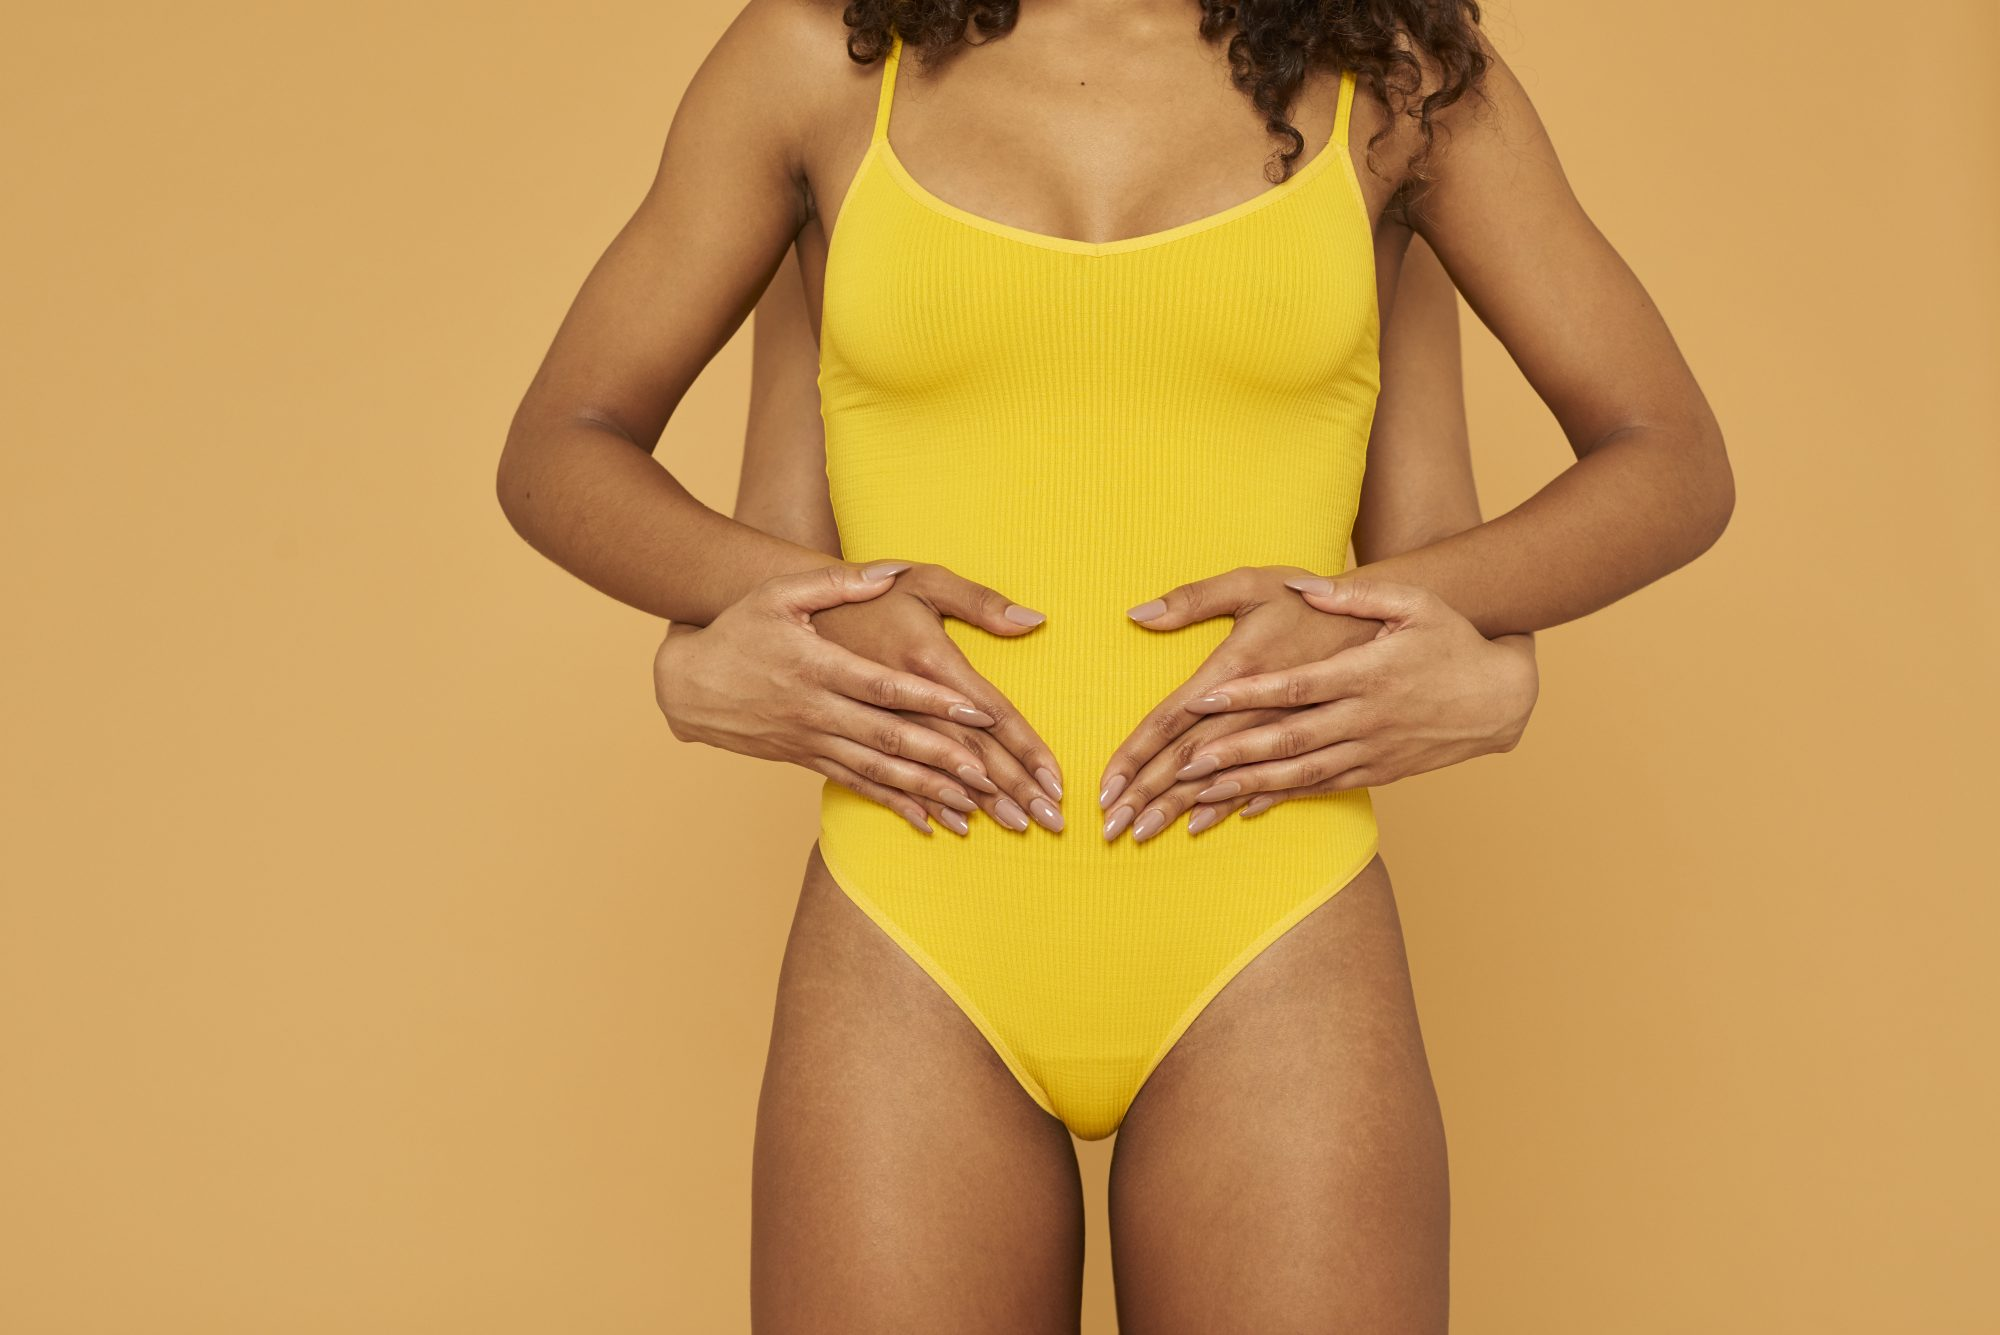 5 Things Every Woman Should Know About Her Pelvic Floor